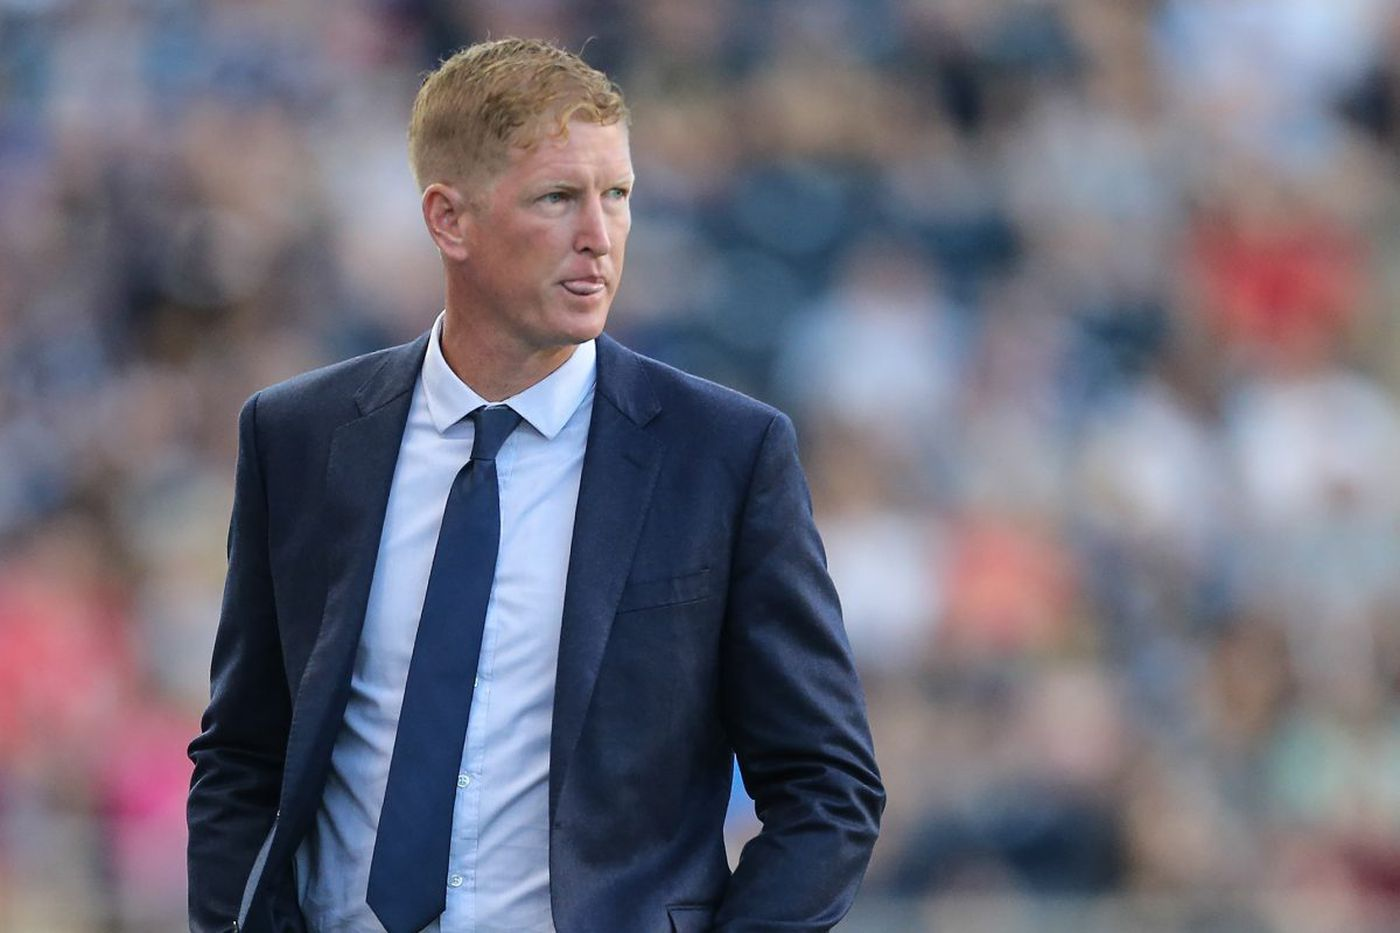 Union's Jim Curtin strongly backs anthem protests, criticizes Trump